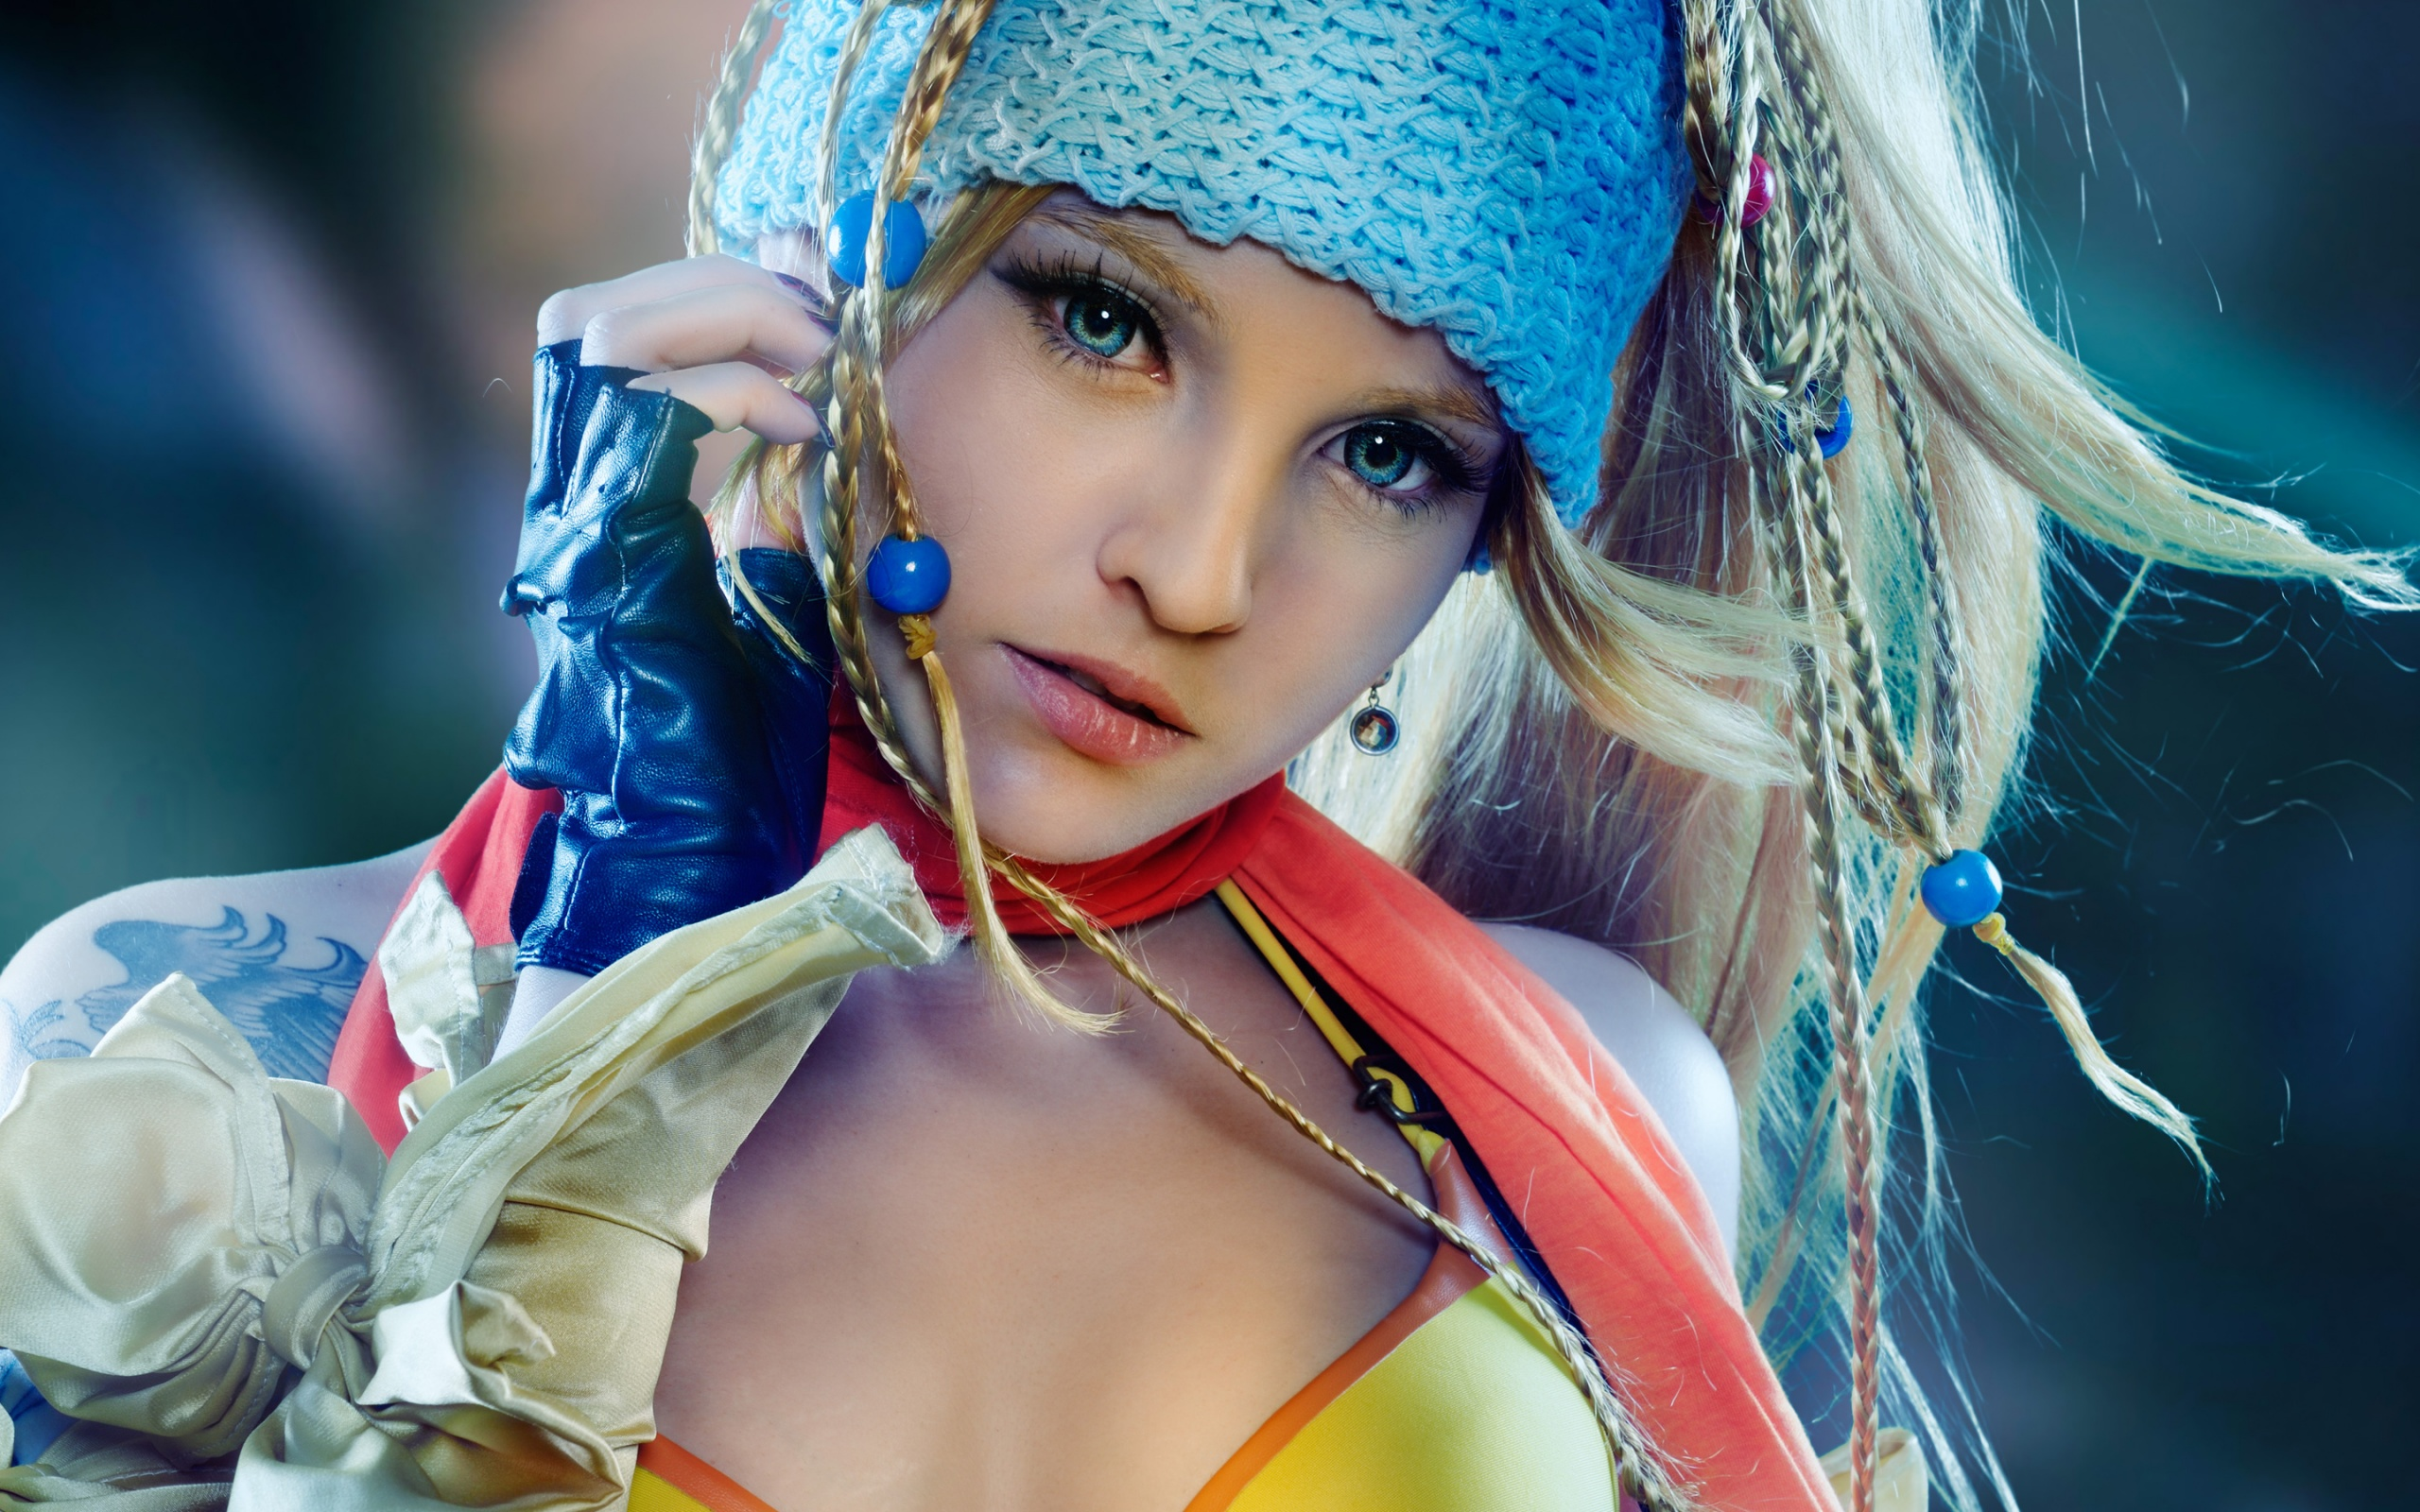 Download Wallpaper Cosplay Anime